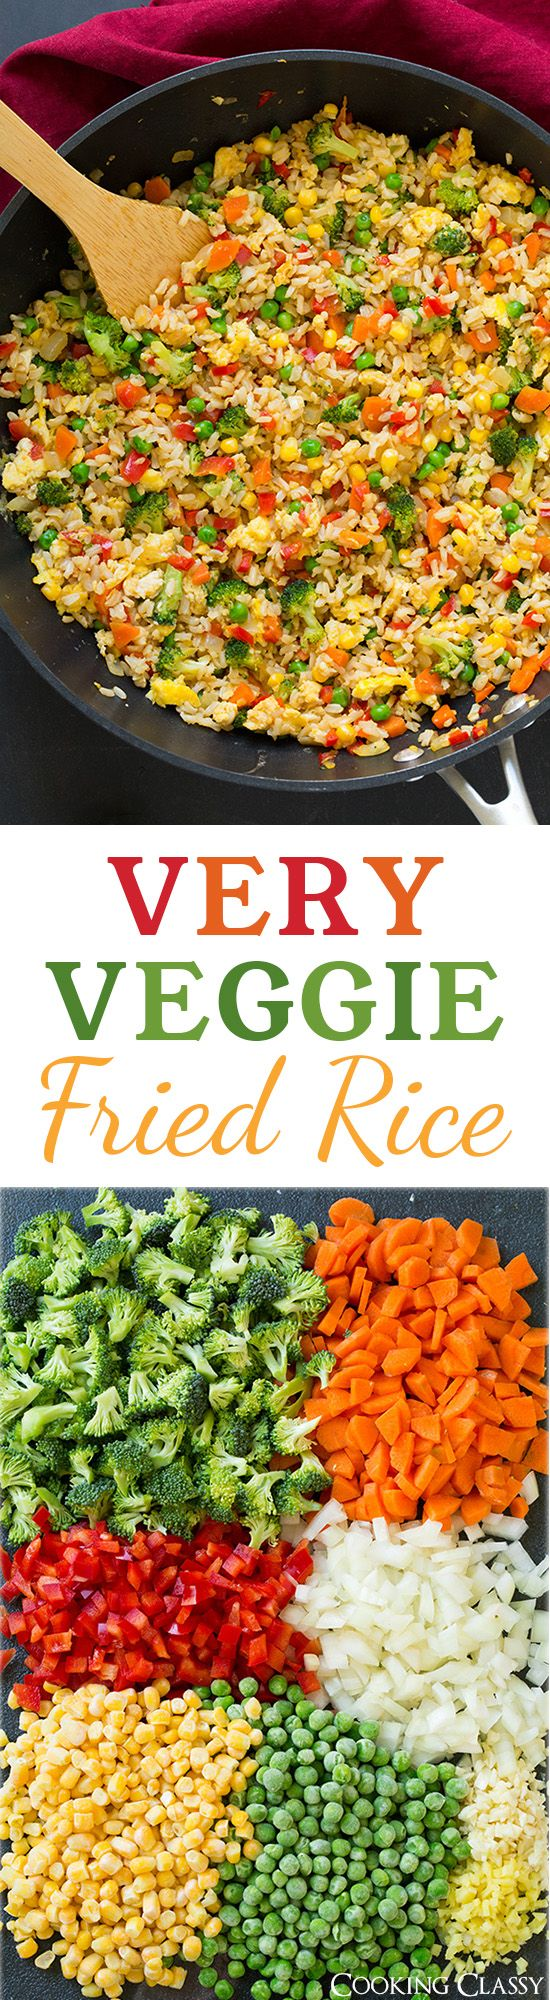 Very Veggie Fried Rice